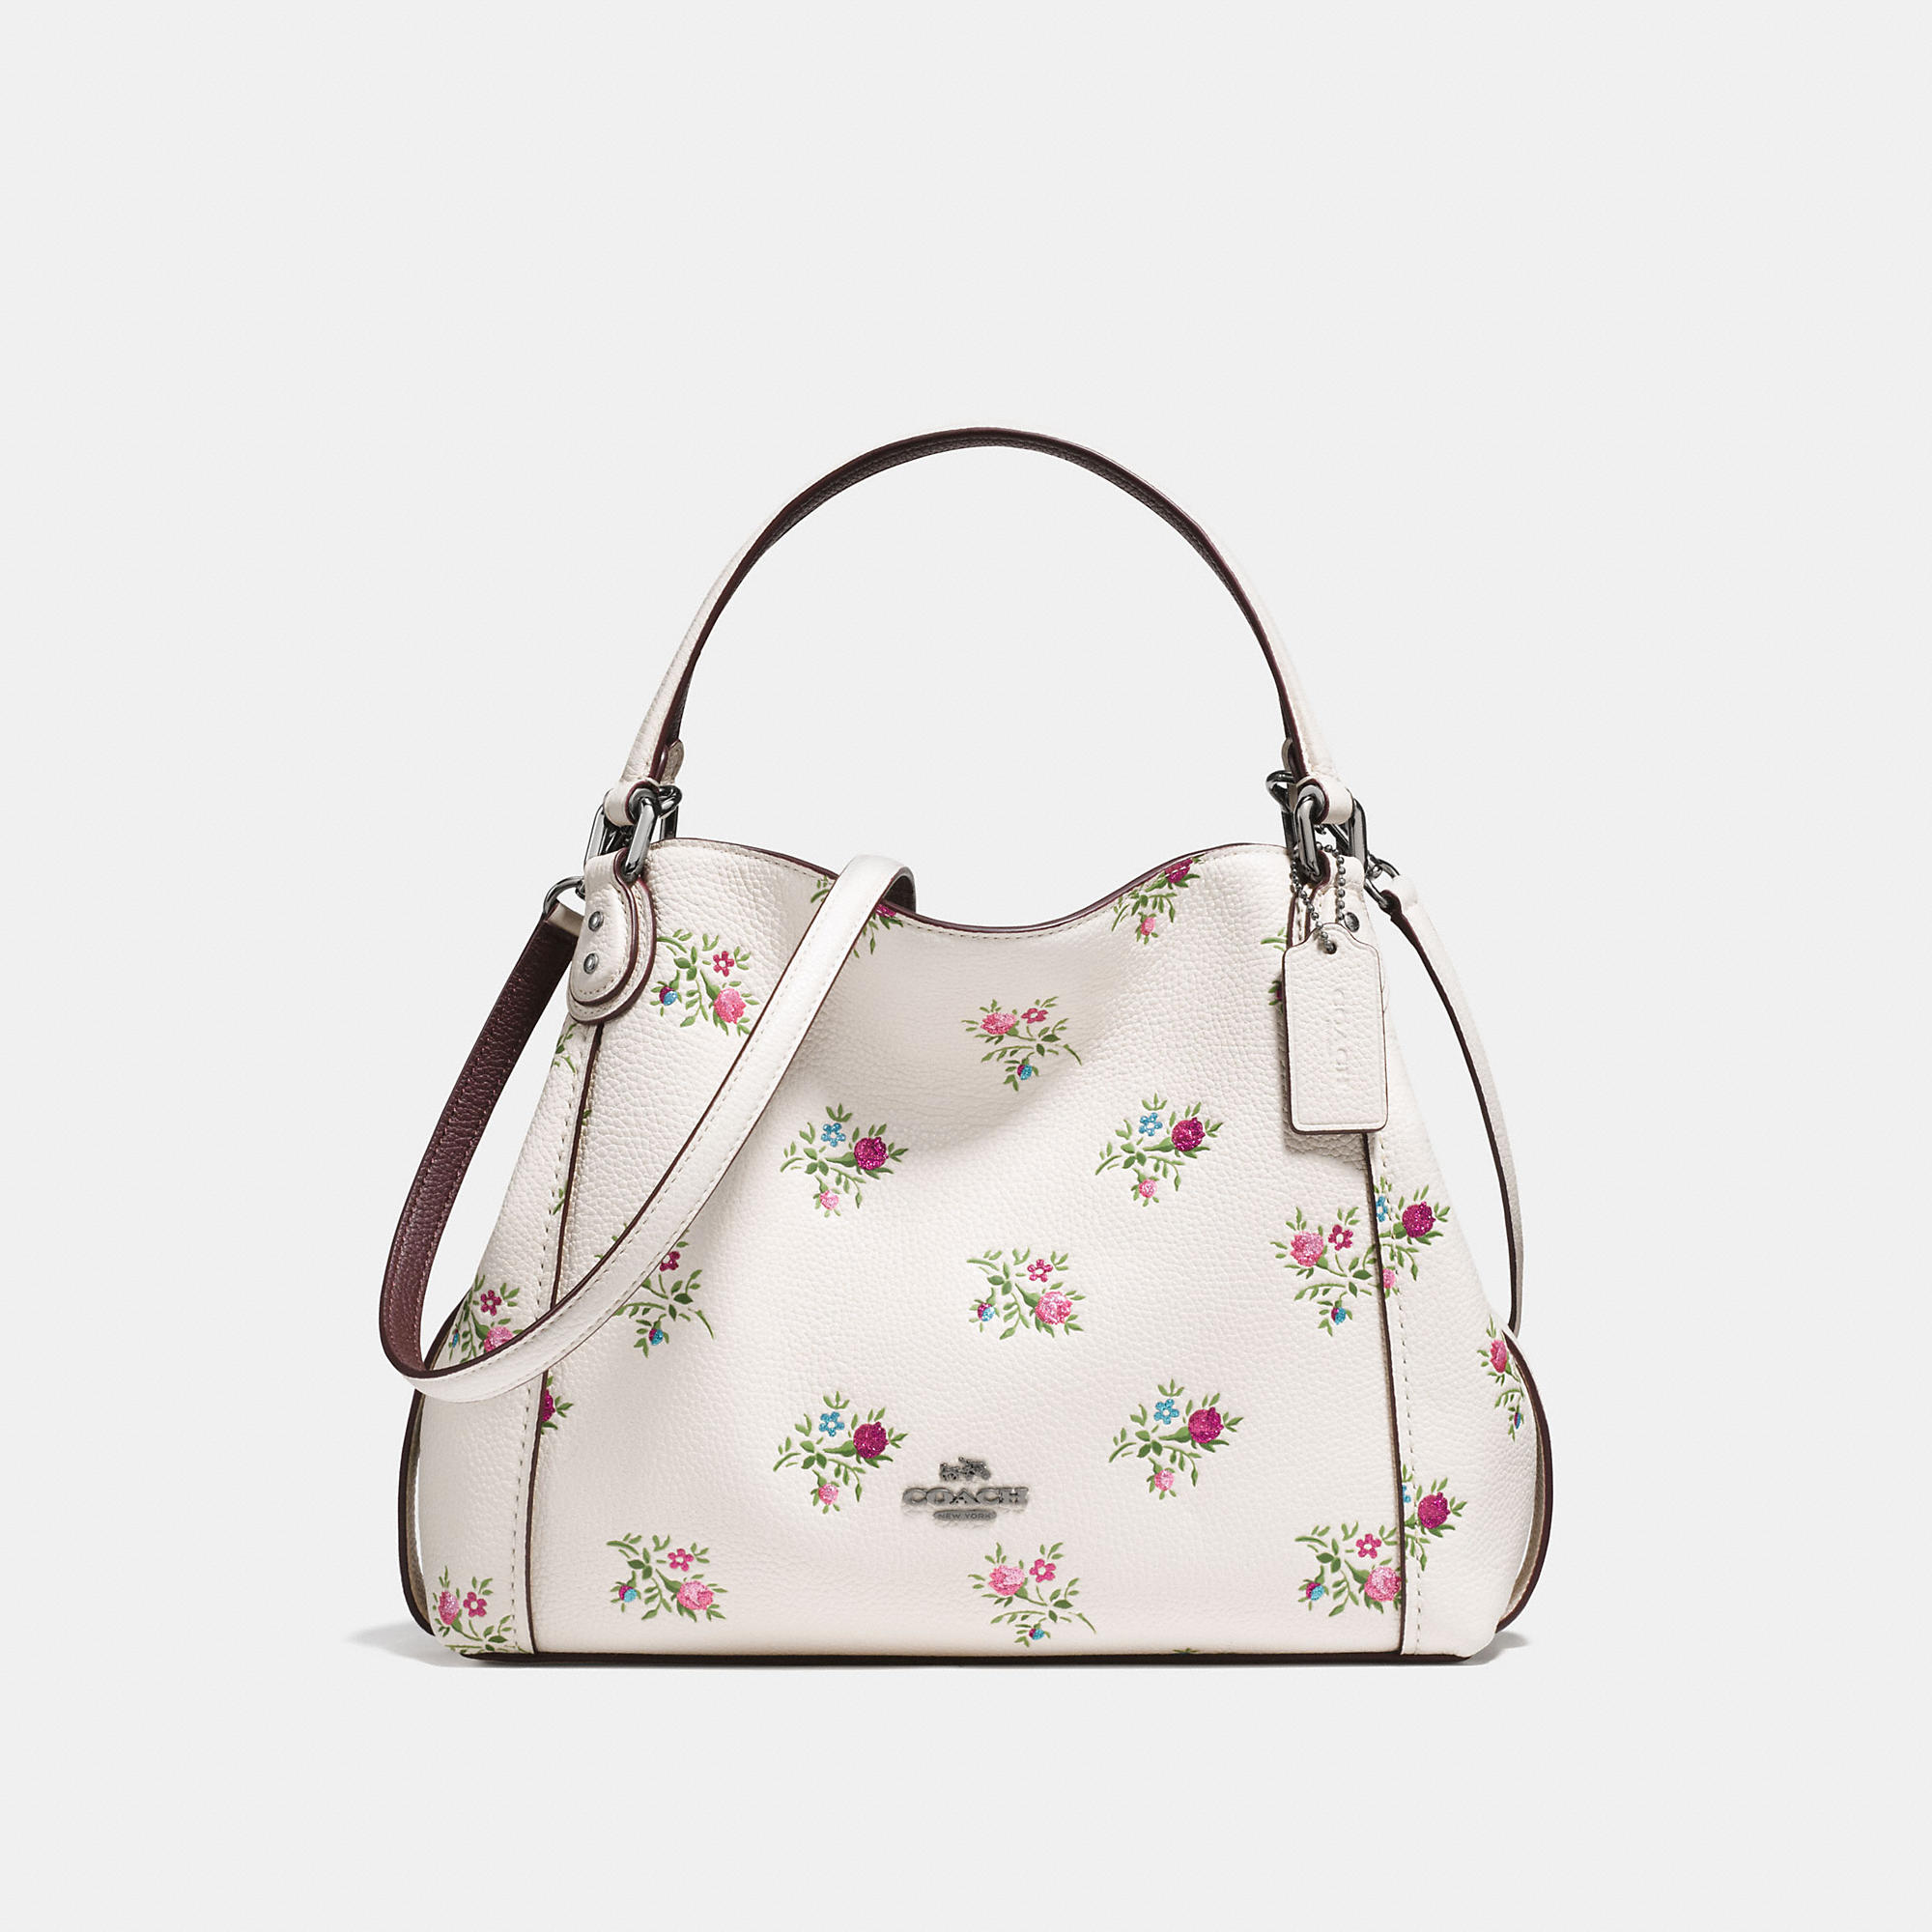 Coach Edie Shoulder Bag 28 With Cross Stitch Floral Print